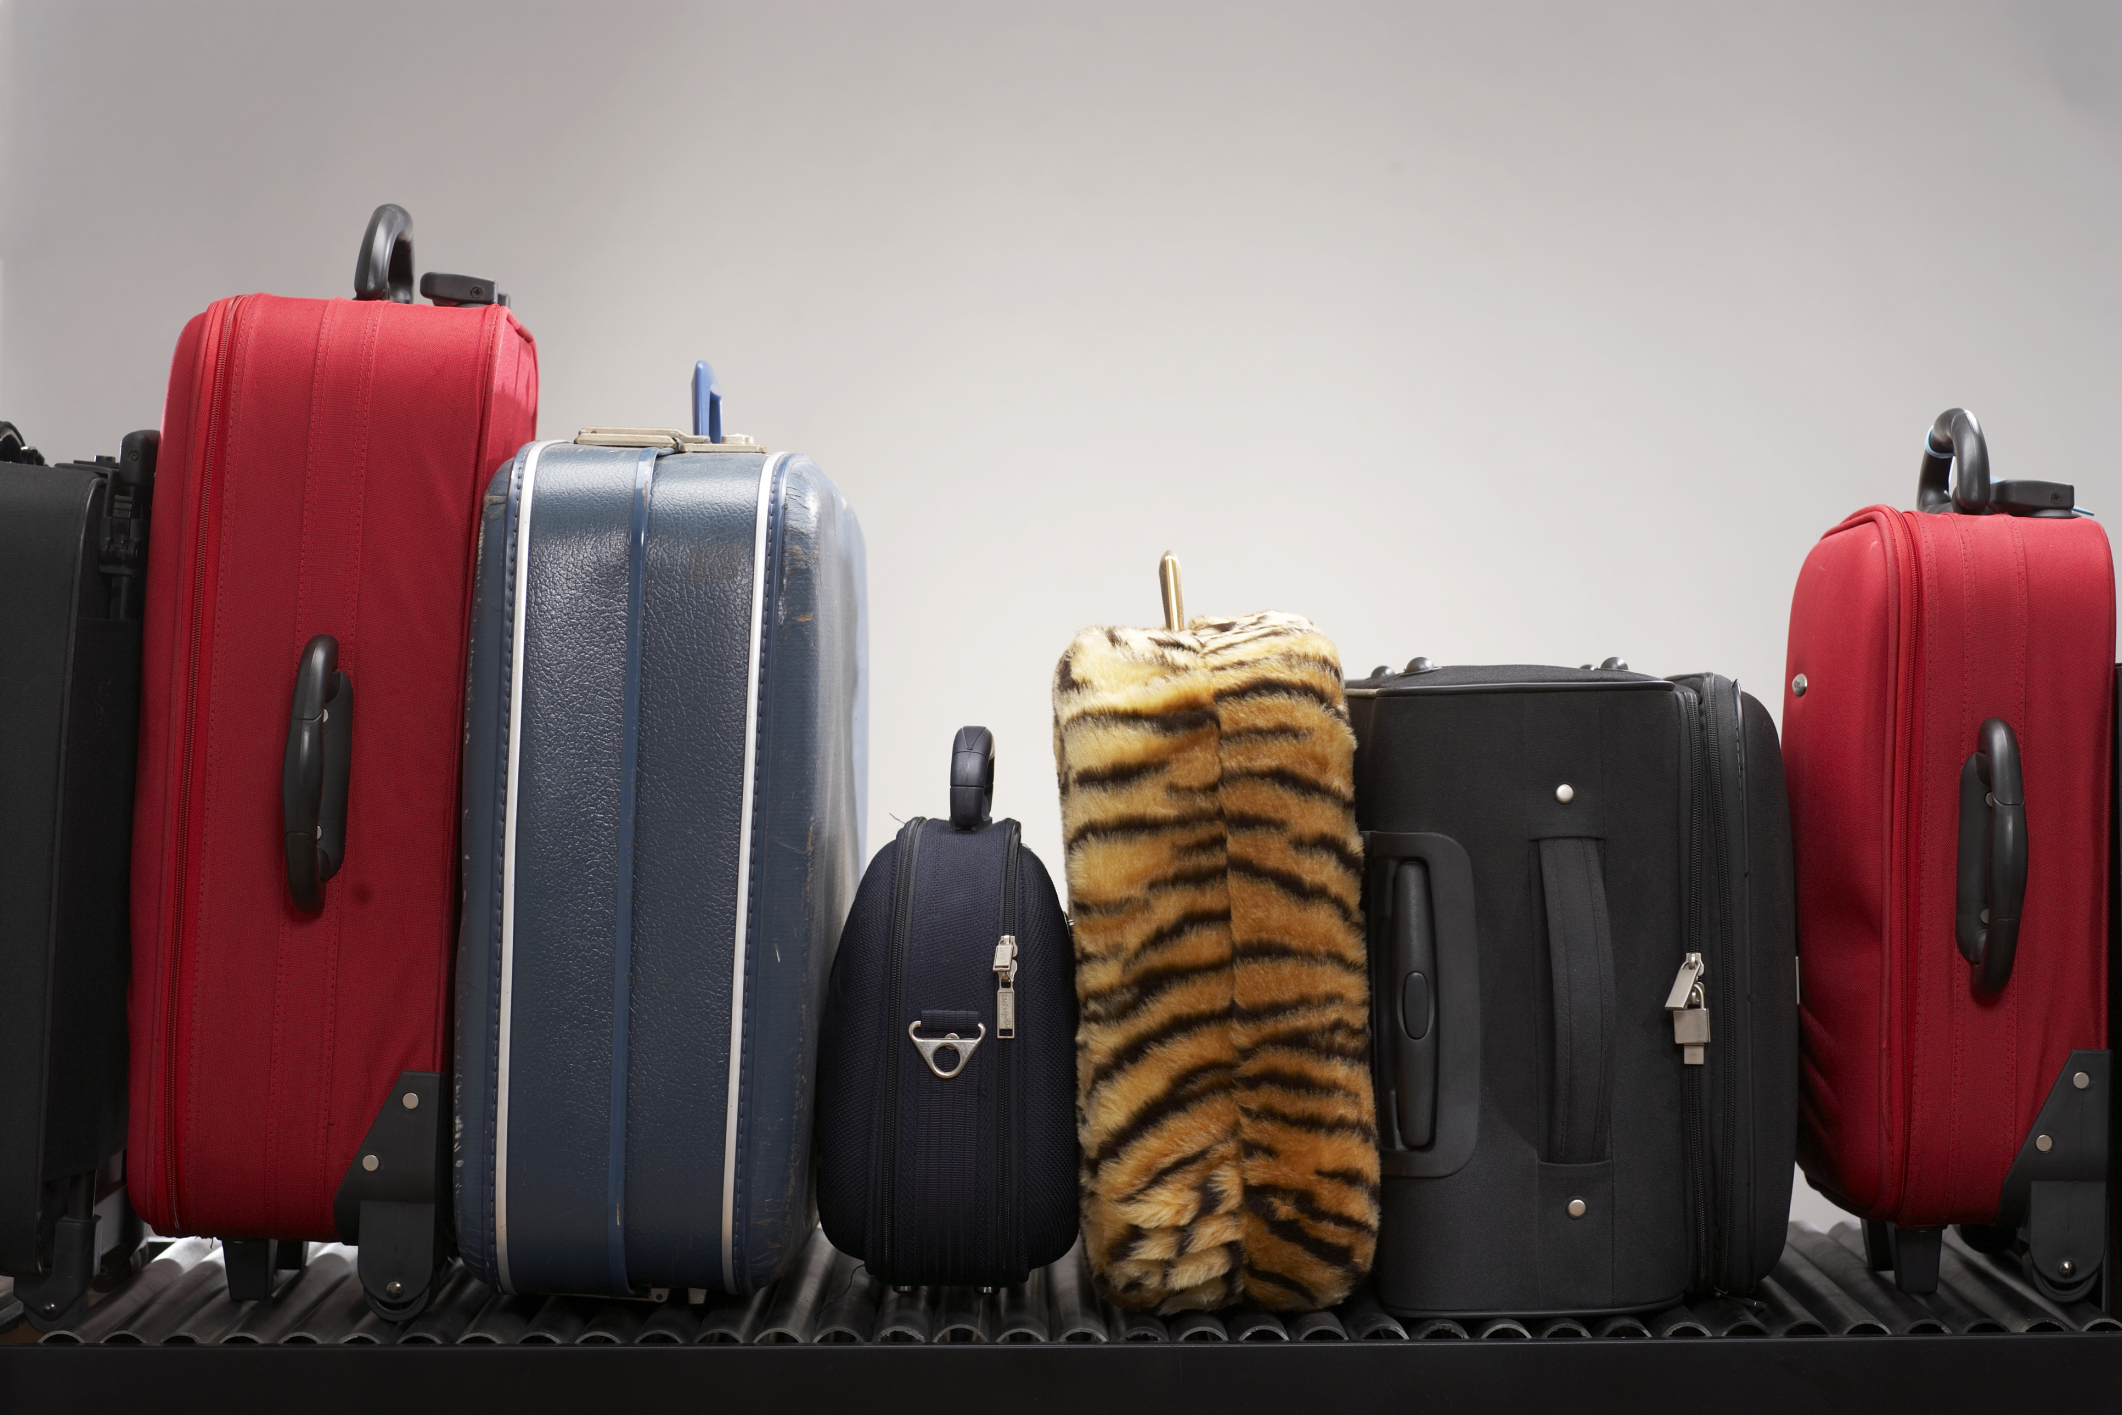 Carry On Luggage Size And Weight Restrictions For International